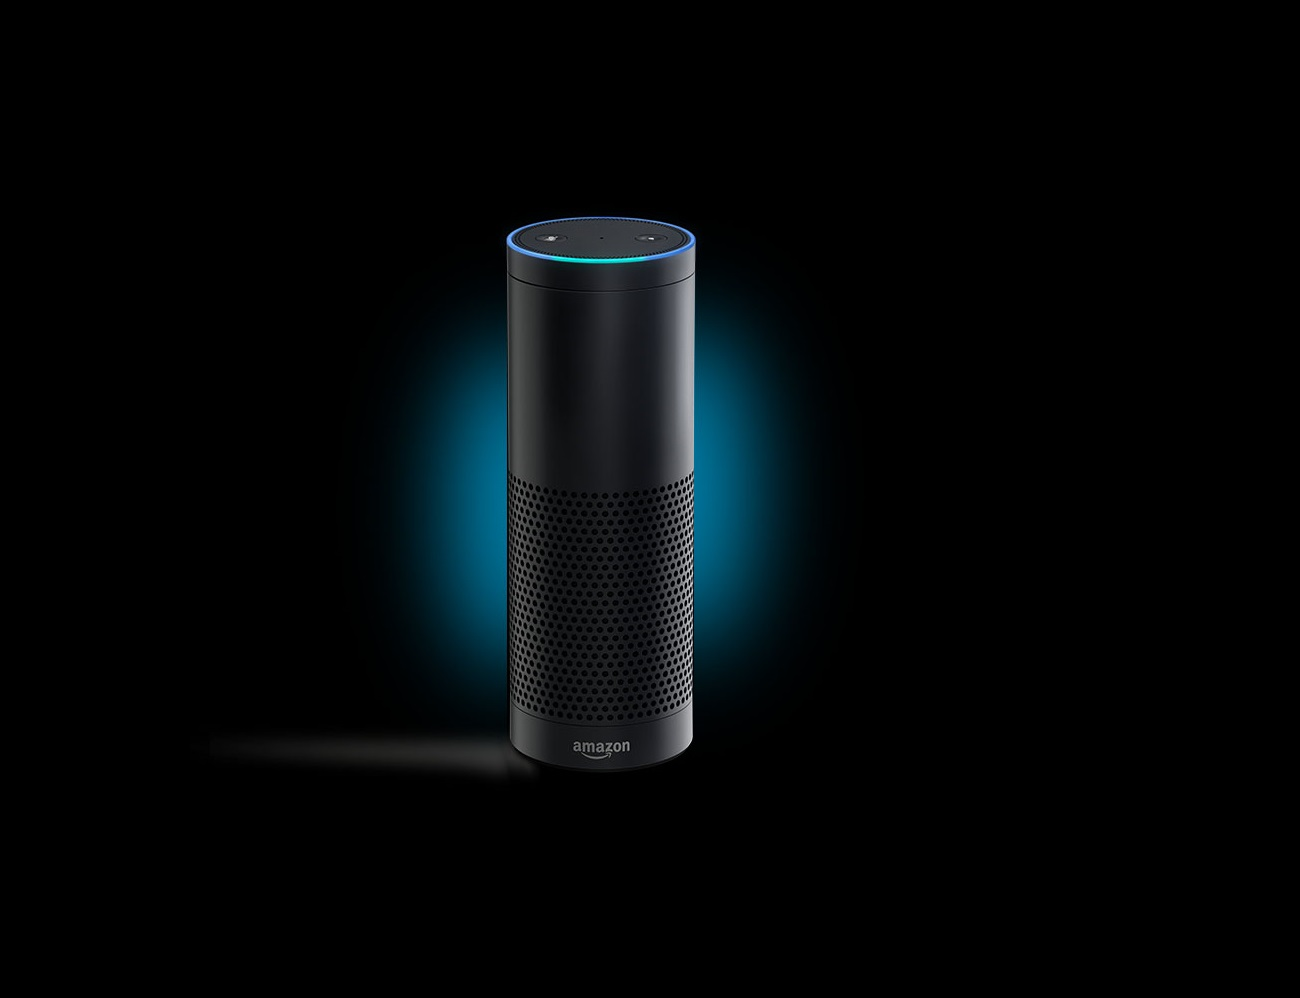 Amazon Echo. Credit: Amazon